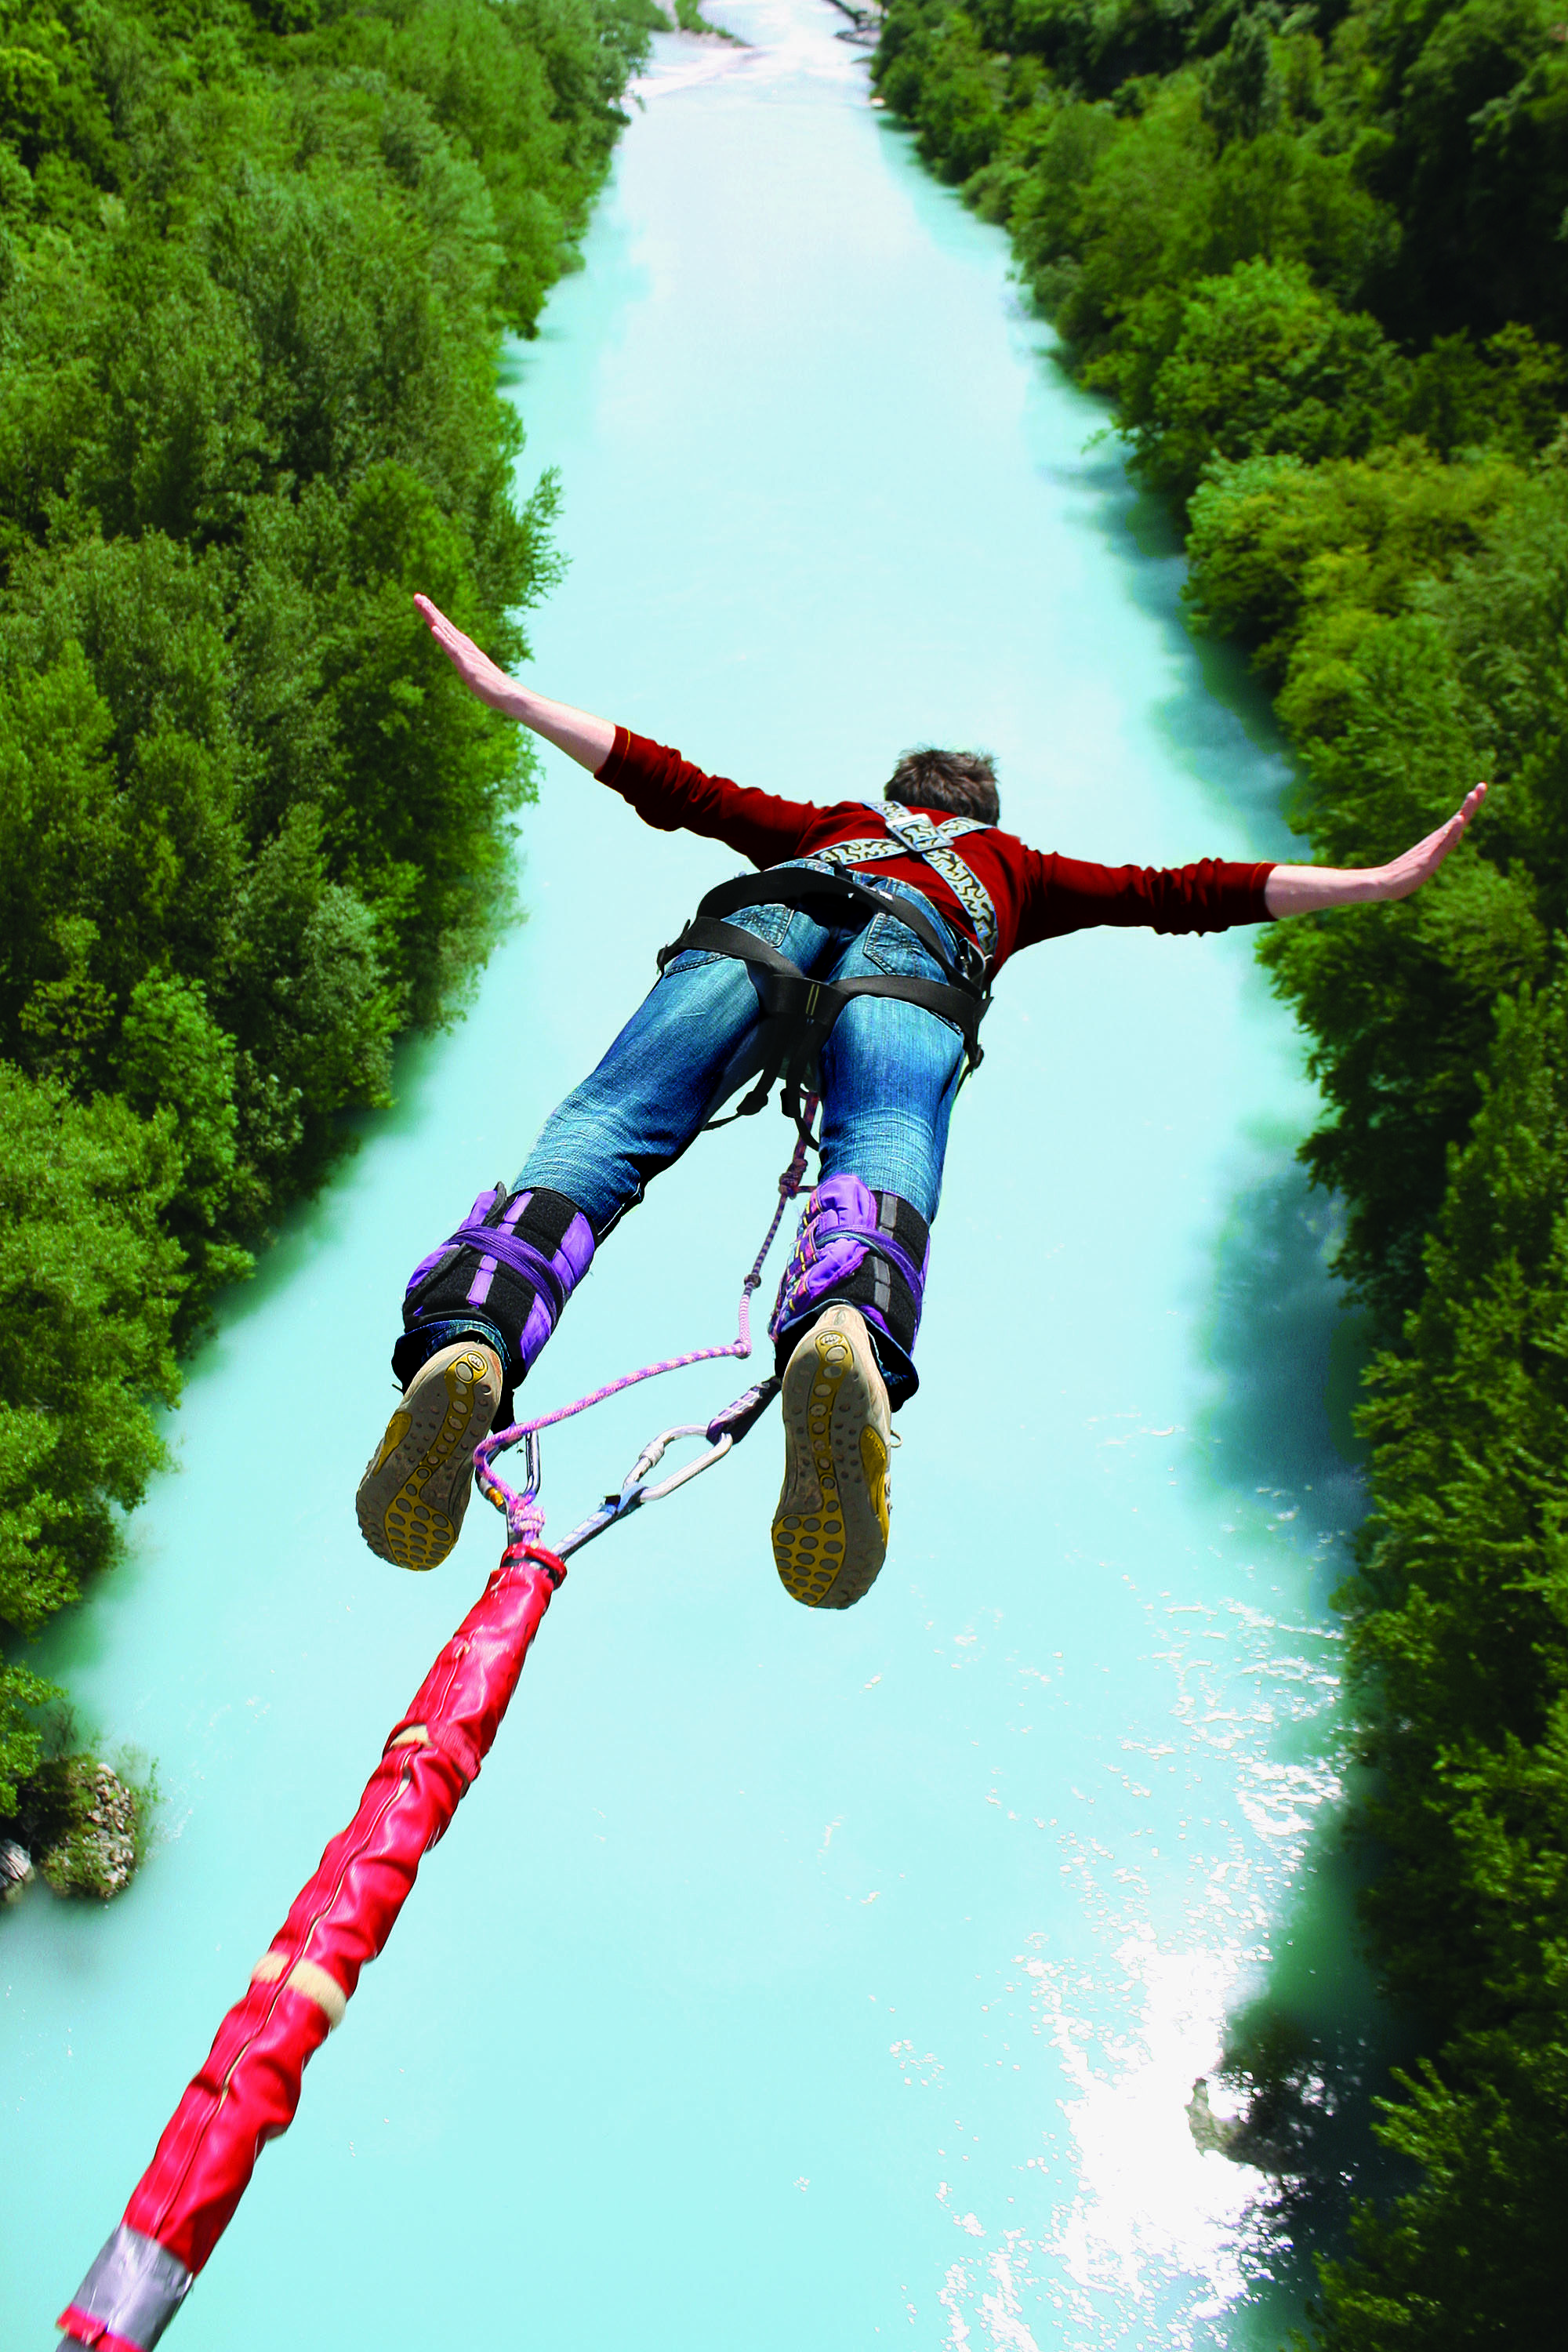 Bungee Jumping.Exciting Experience Of The Bungee Jump From The Bridge Over The